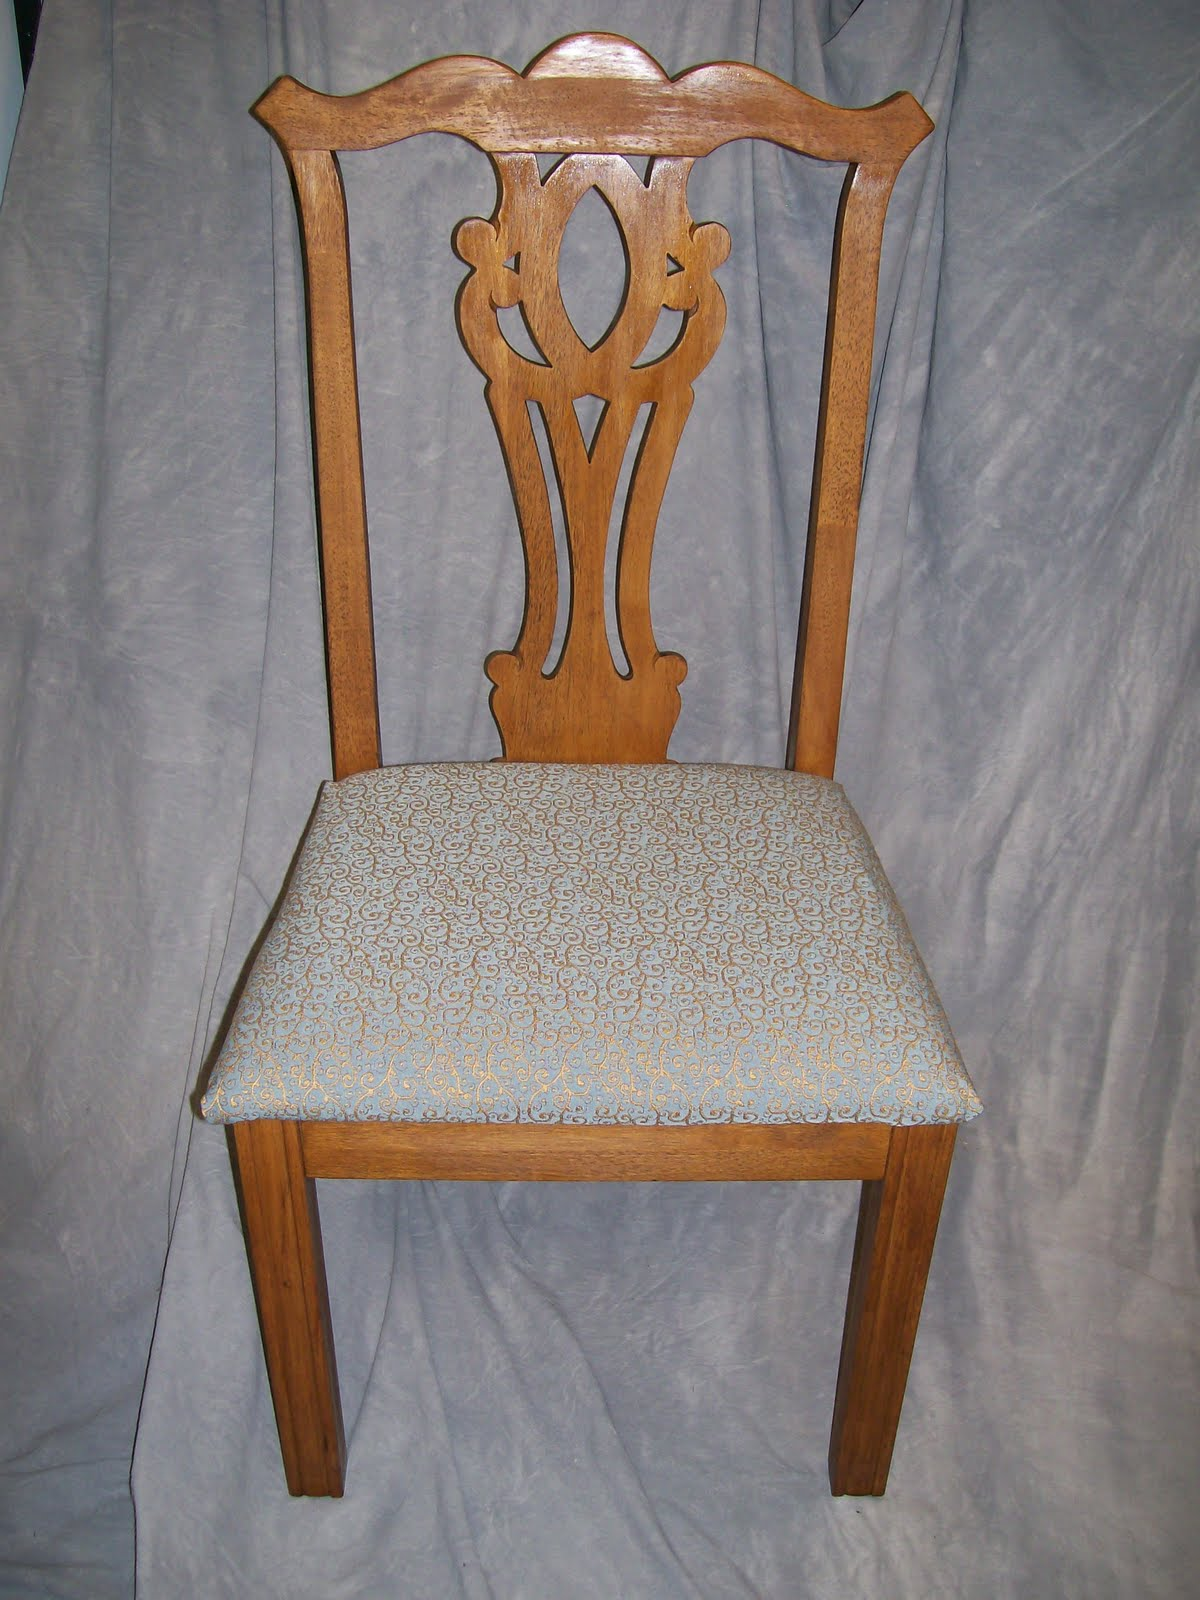 margaritaville chairs for sale what is a geri chair used charity and pass along plants april 2010